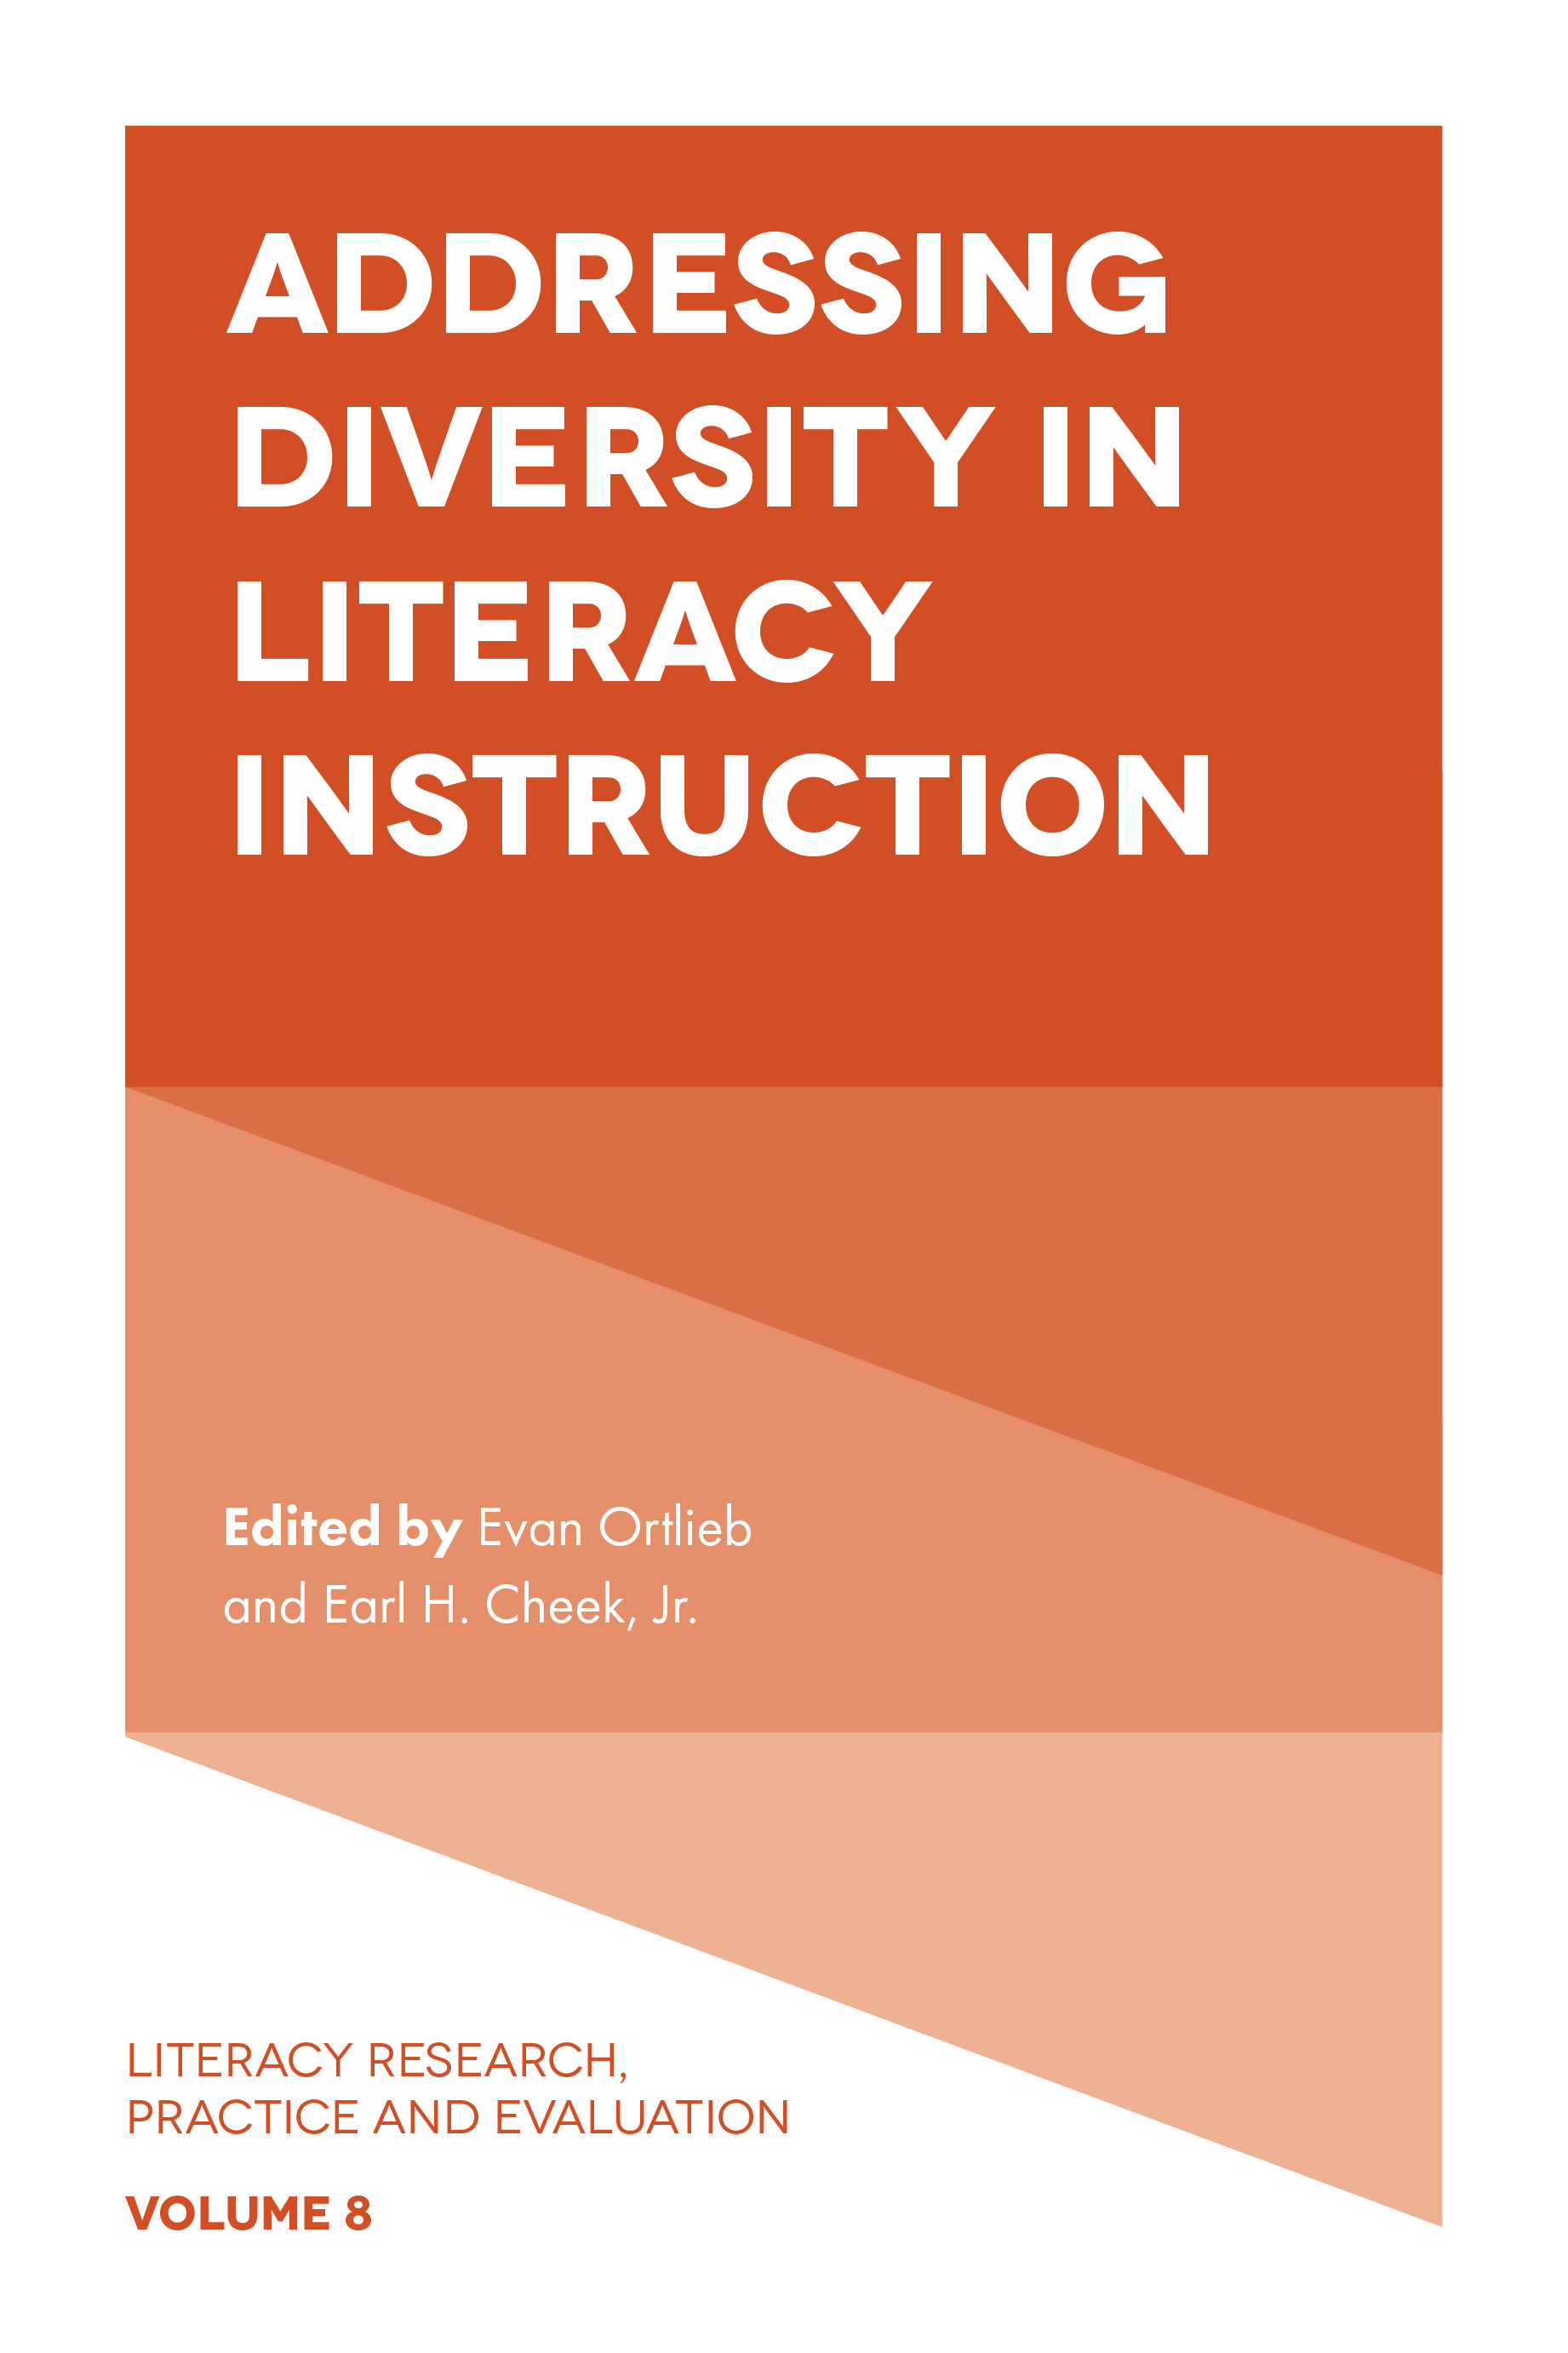 Book cover for Addressing Diversity in Literacy Instruction a book by Evan  Ortlieb, Earl H. Cheek Jr.